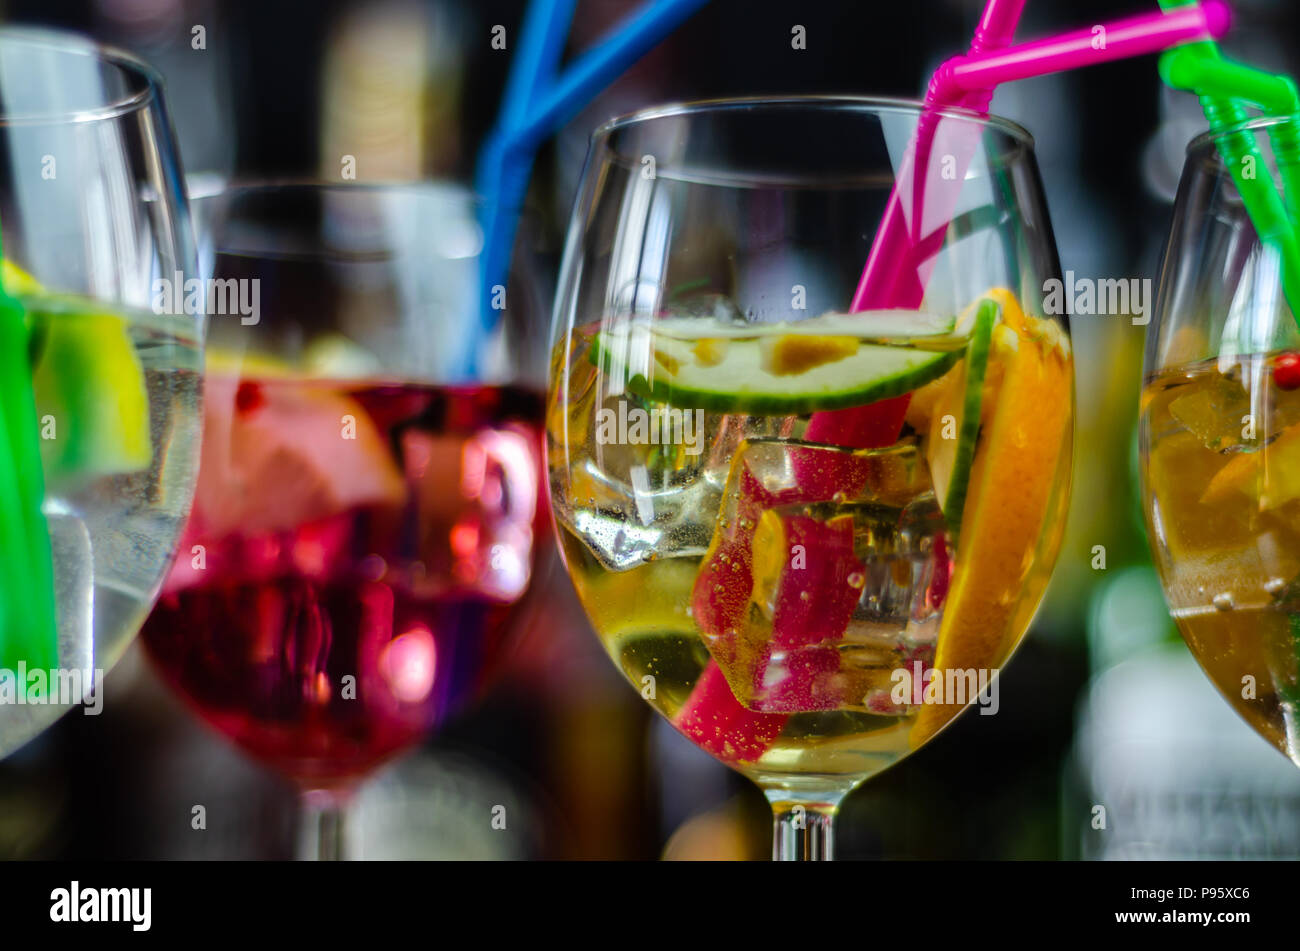 fresh and refreshing cocktails based on gin, a distinctive herbal flavor, bar - Stock Image